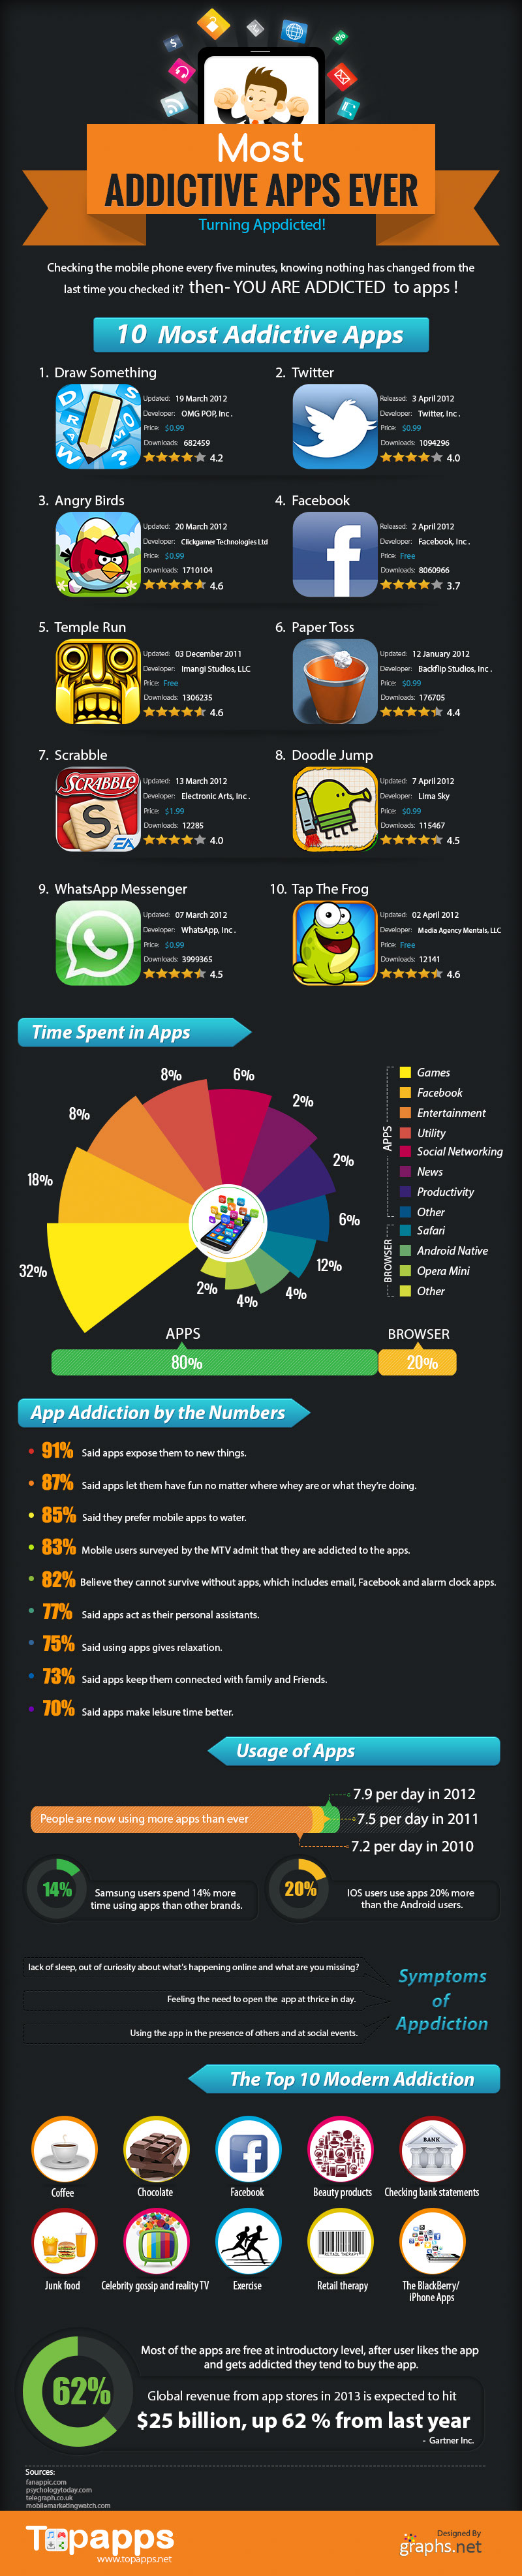 Addicted to Apps-Infographic